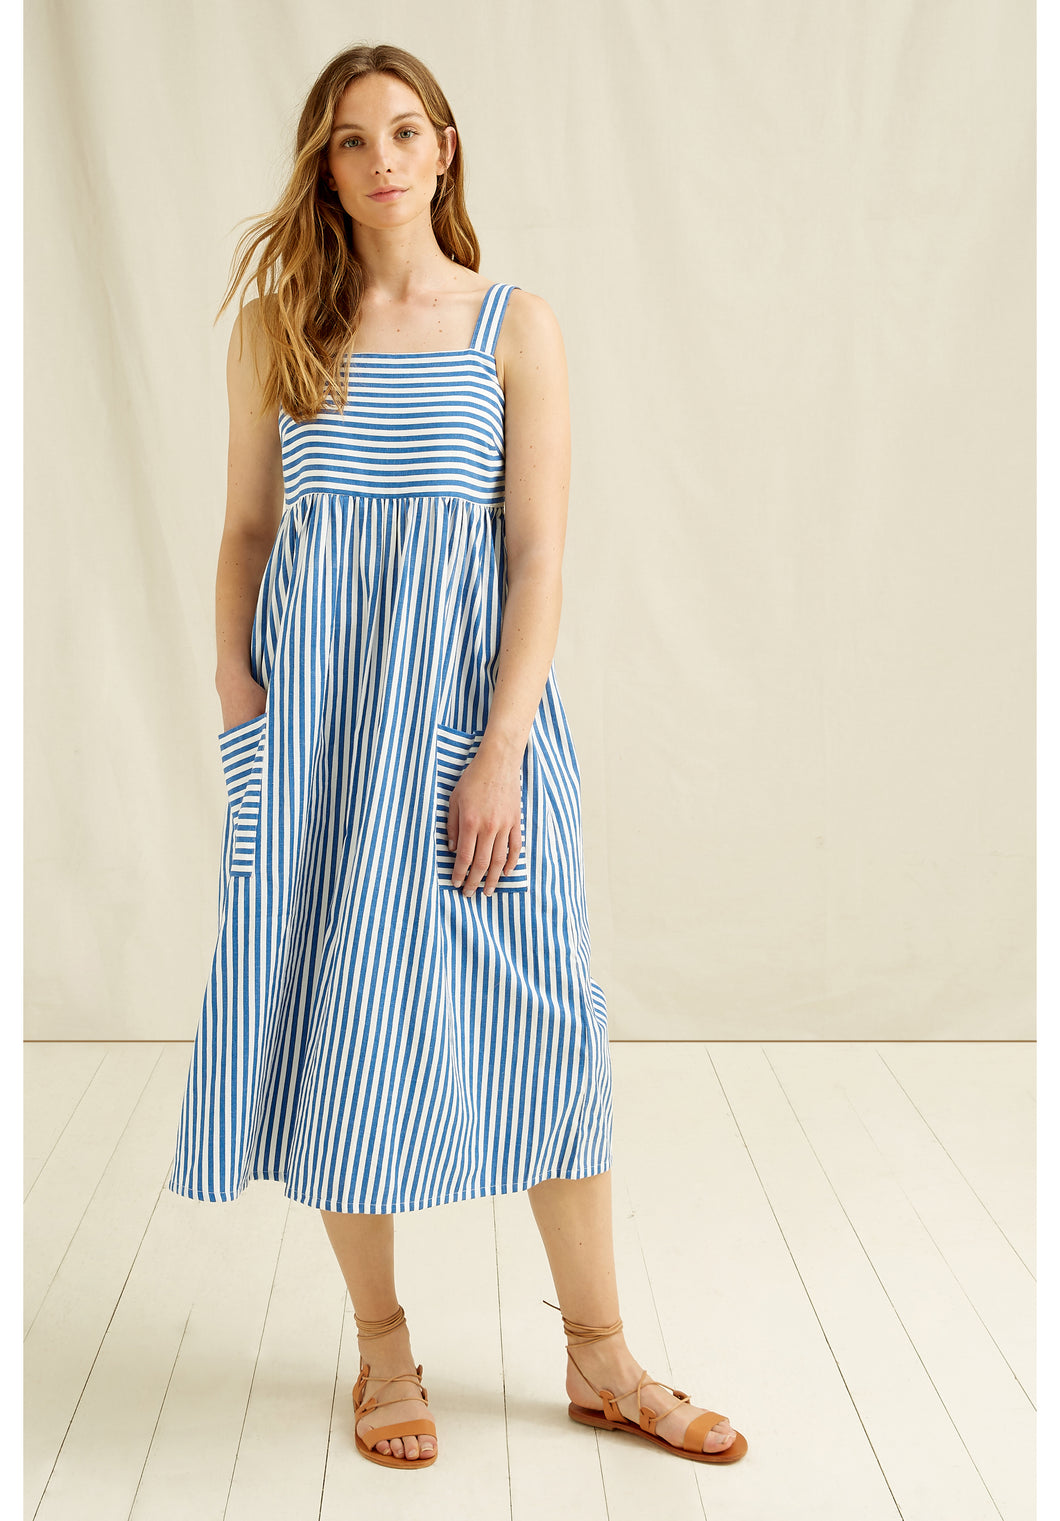 Handwoven Organic Cotton Midi Dress - White and Blue Stripe